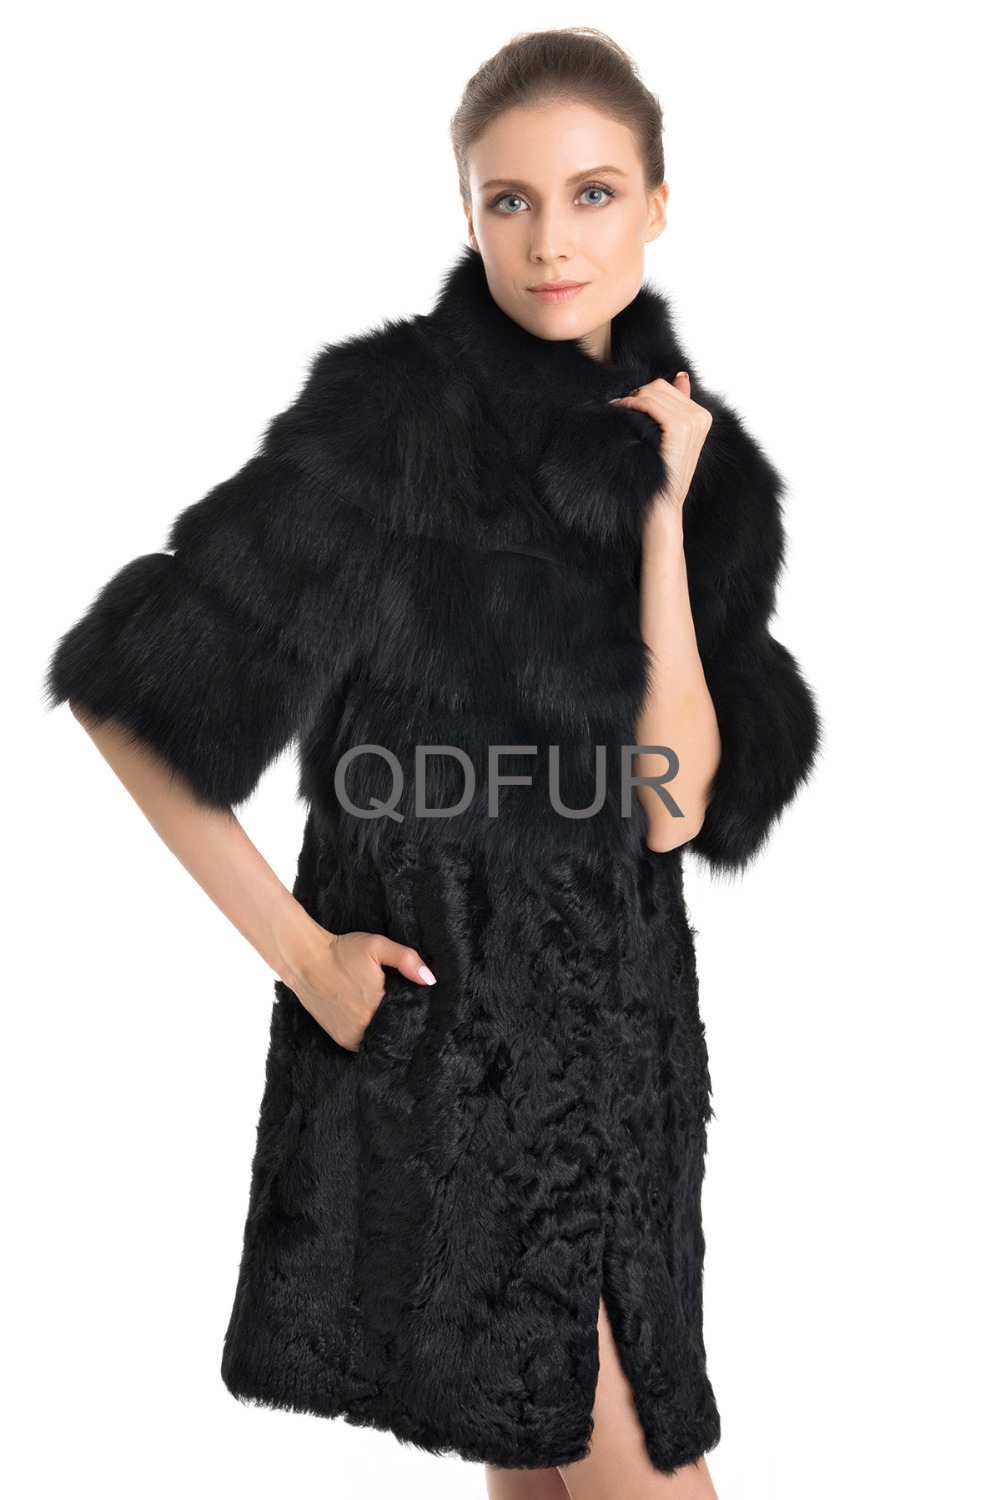 Aliexpress.com : Buy Women Fashion Genuine Real Fox Fur Coats ...